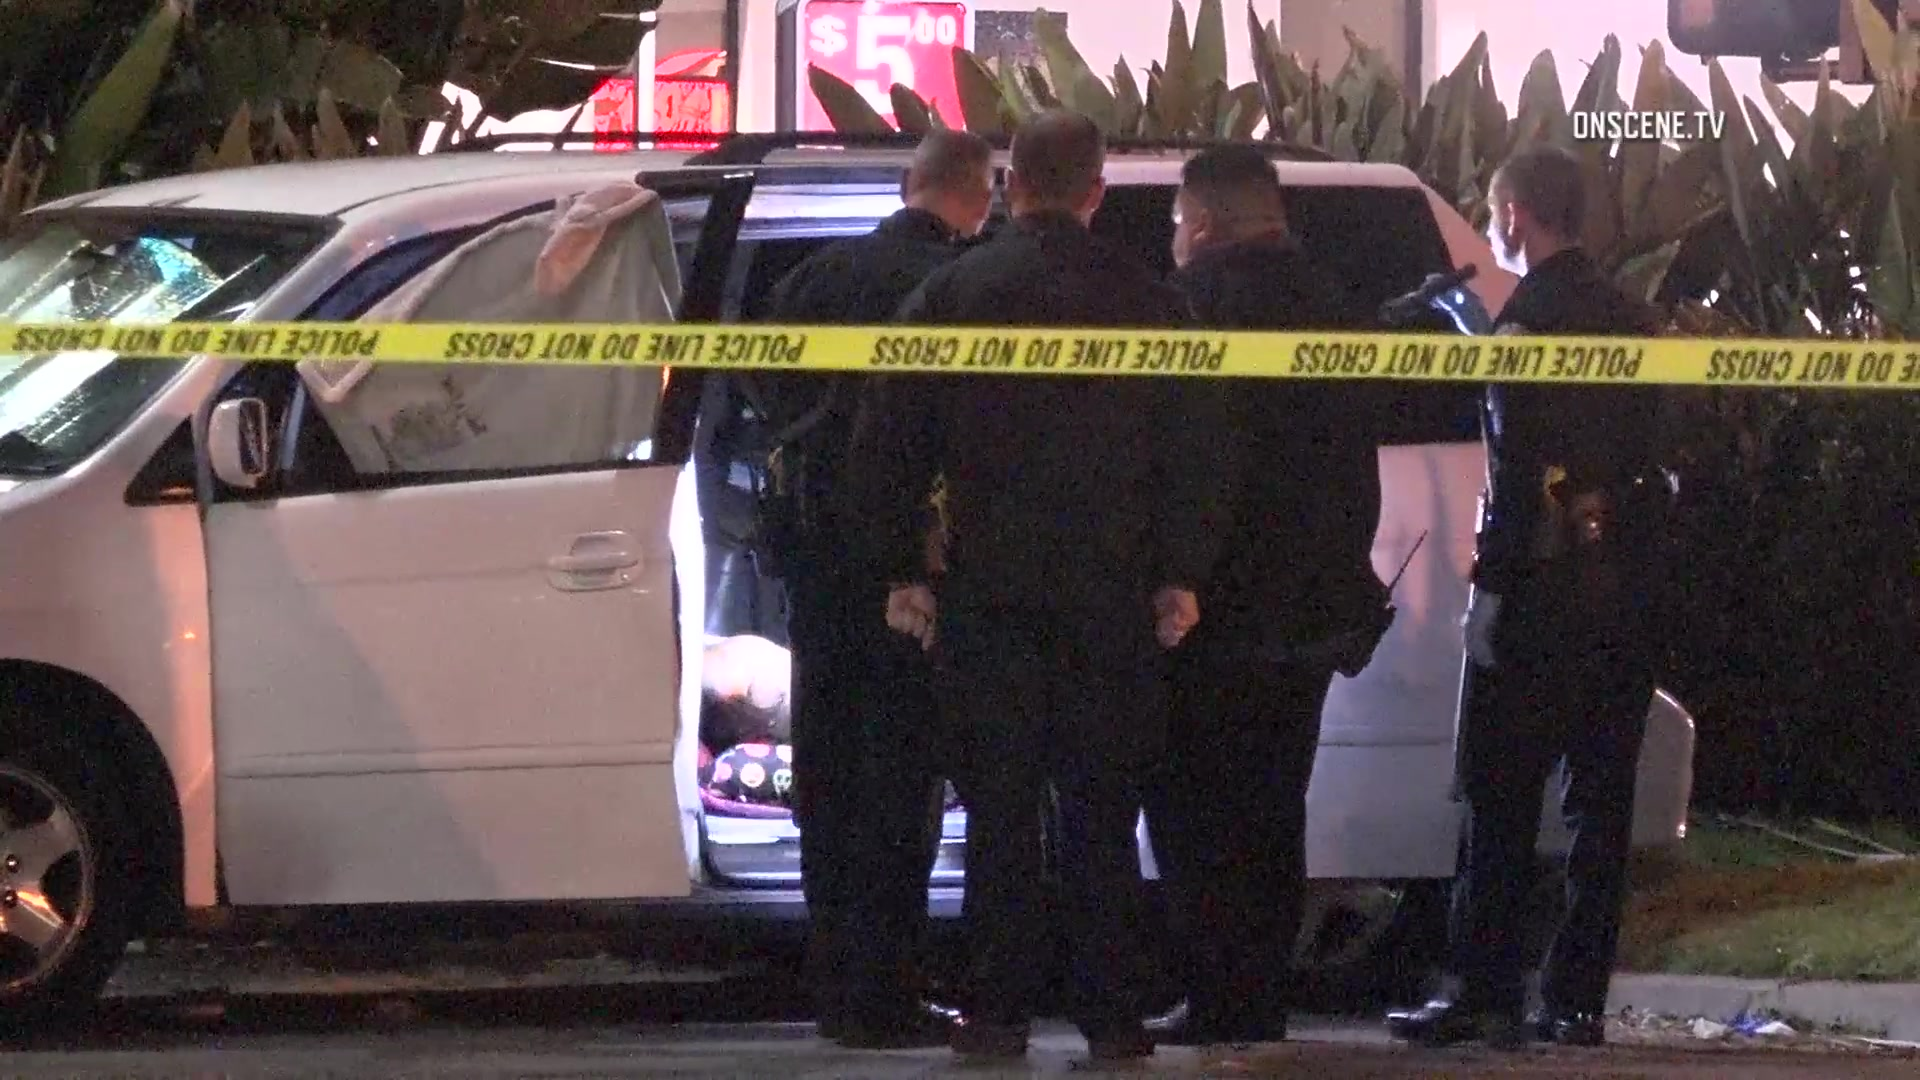 Family of 4 with 2 children found dead in Garden Grove